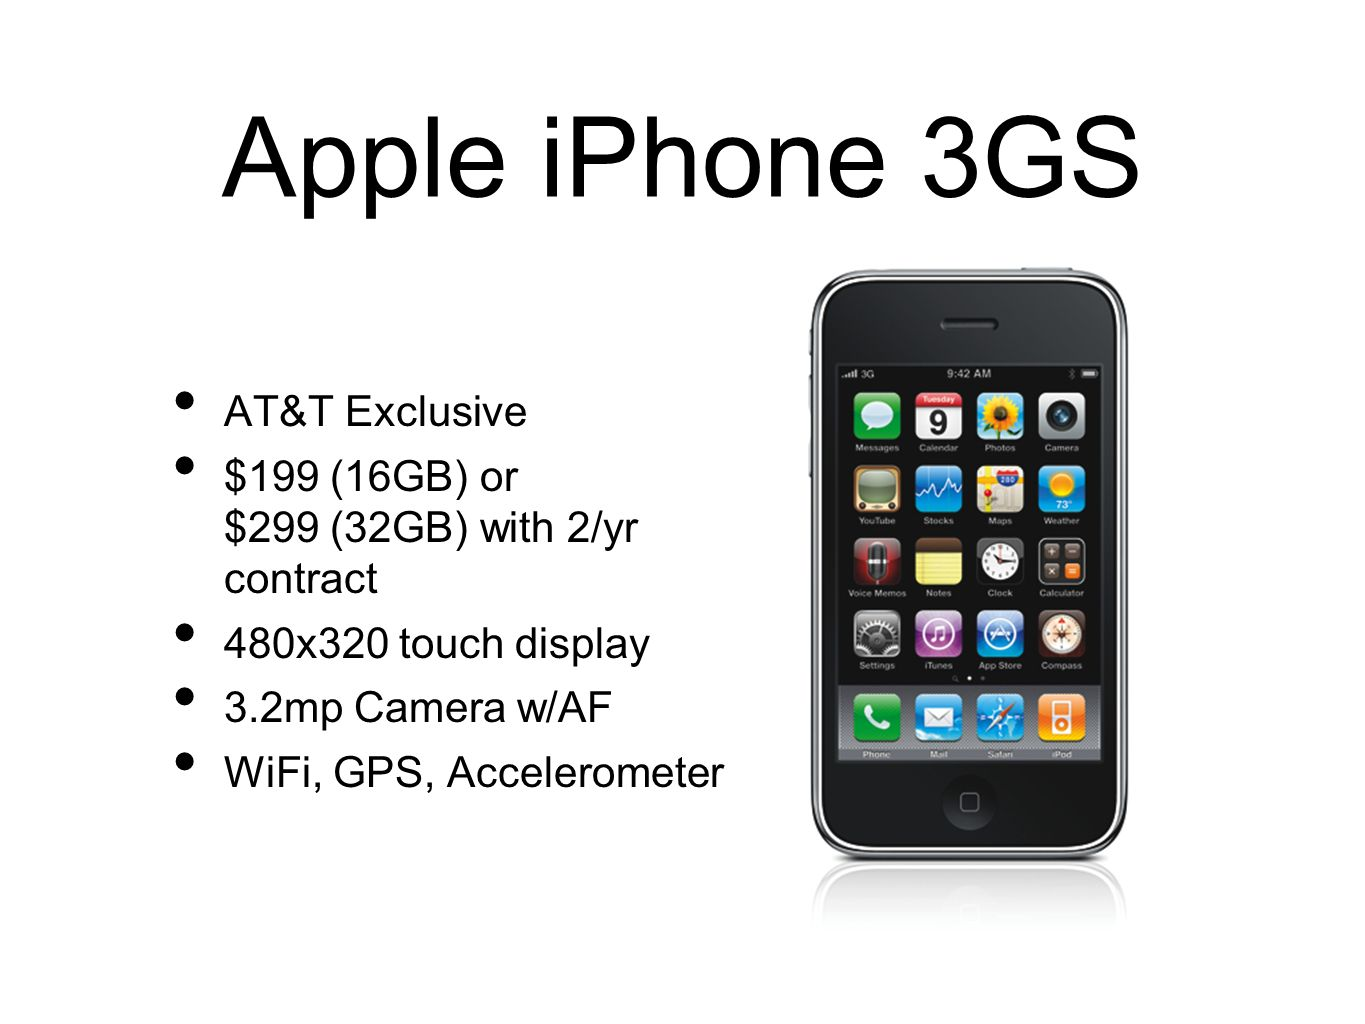 Apple iPhone 3GS AT&T Exclusive